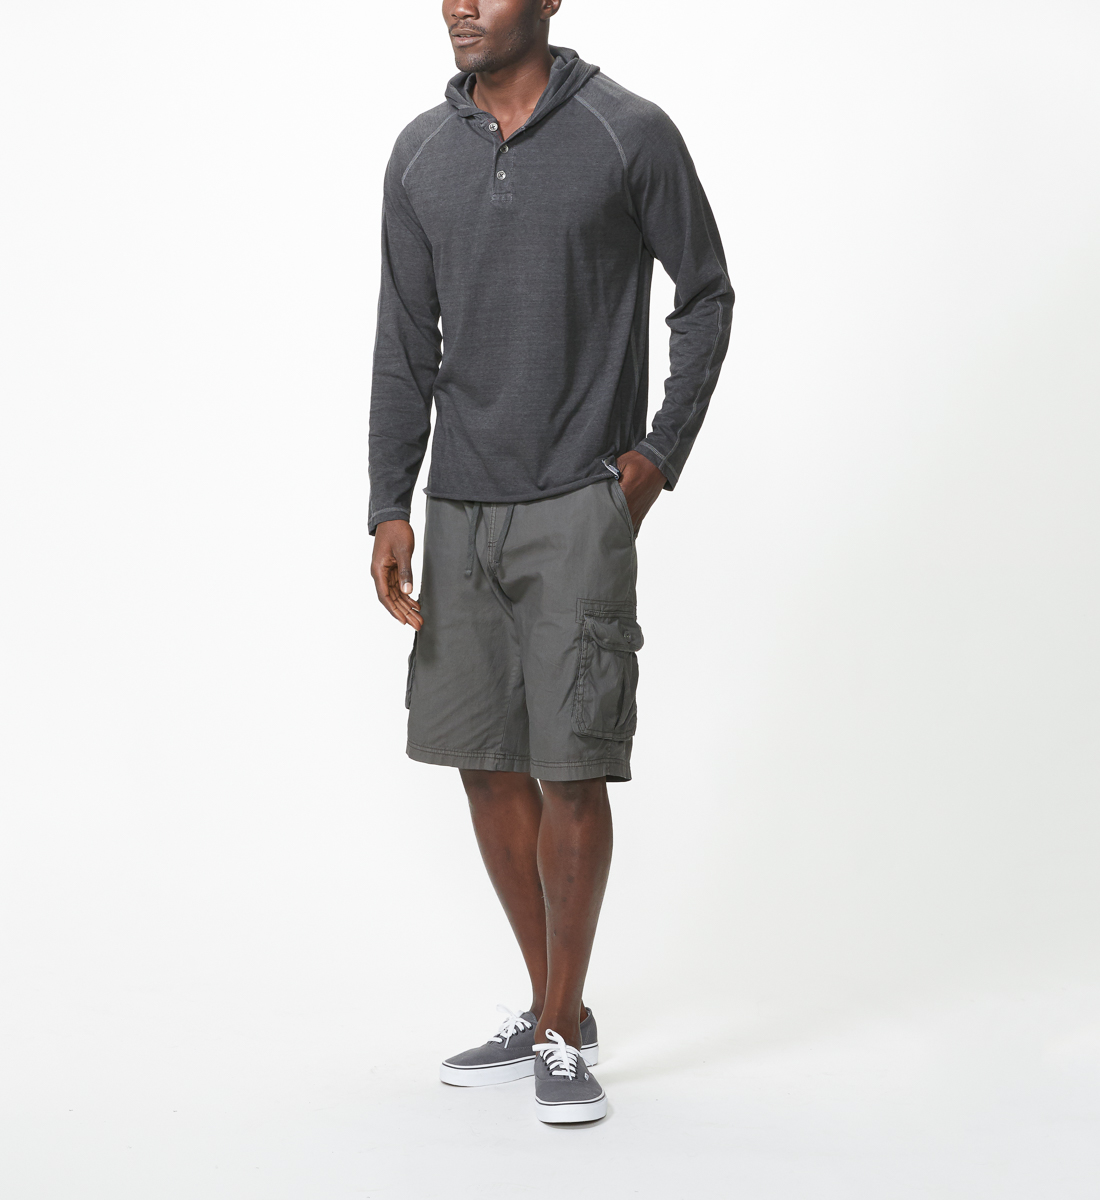 Ryan Cargo Shorts, Vintage Black, hi-res